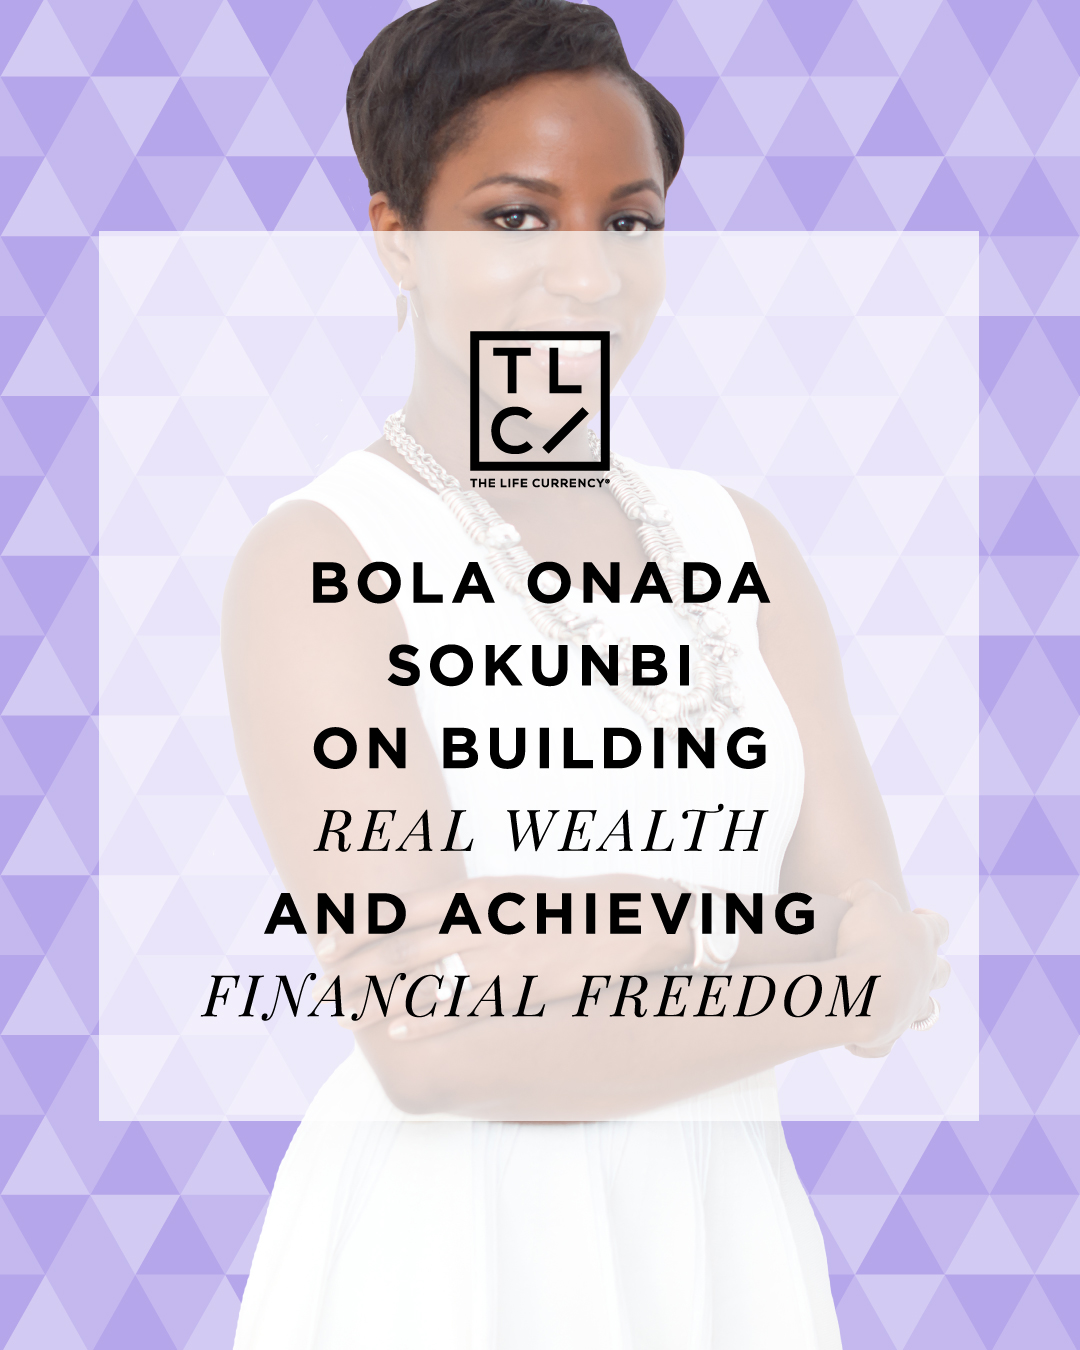 Bola Onada Sokunbi on Building Real Wealth and Achieving Financial Freedom